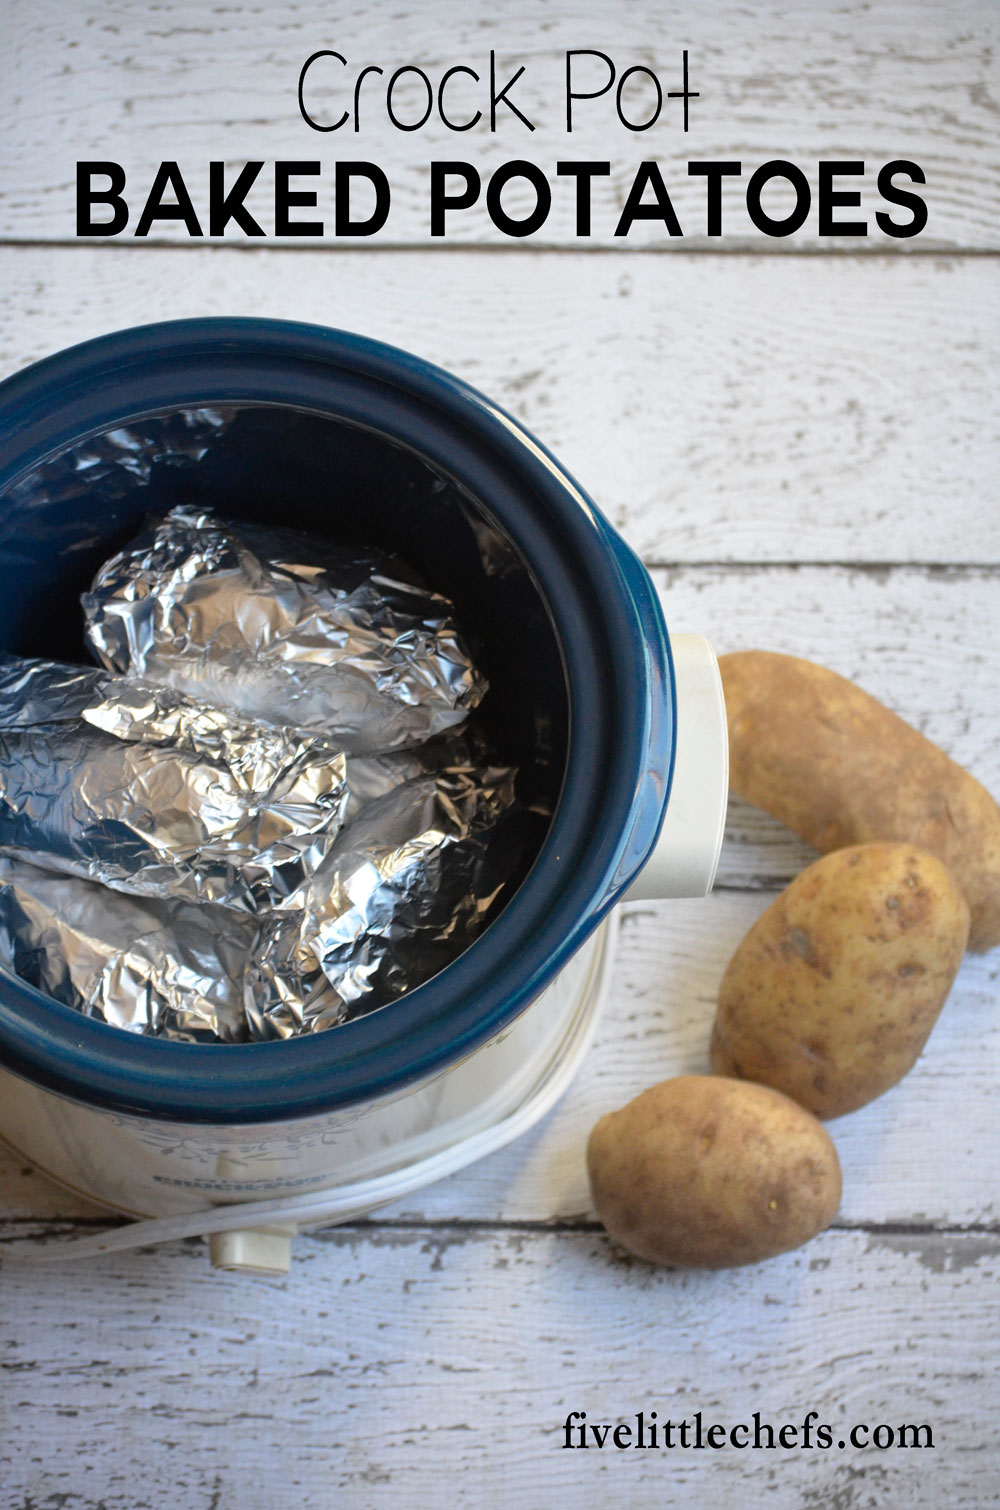 How to cook baked potatoes in a crock pot. A great way to make baked potatoes while freeing up space in your oven.